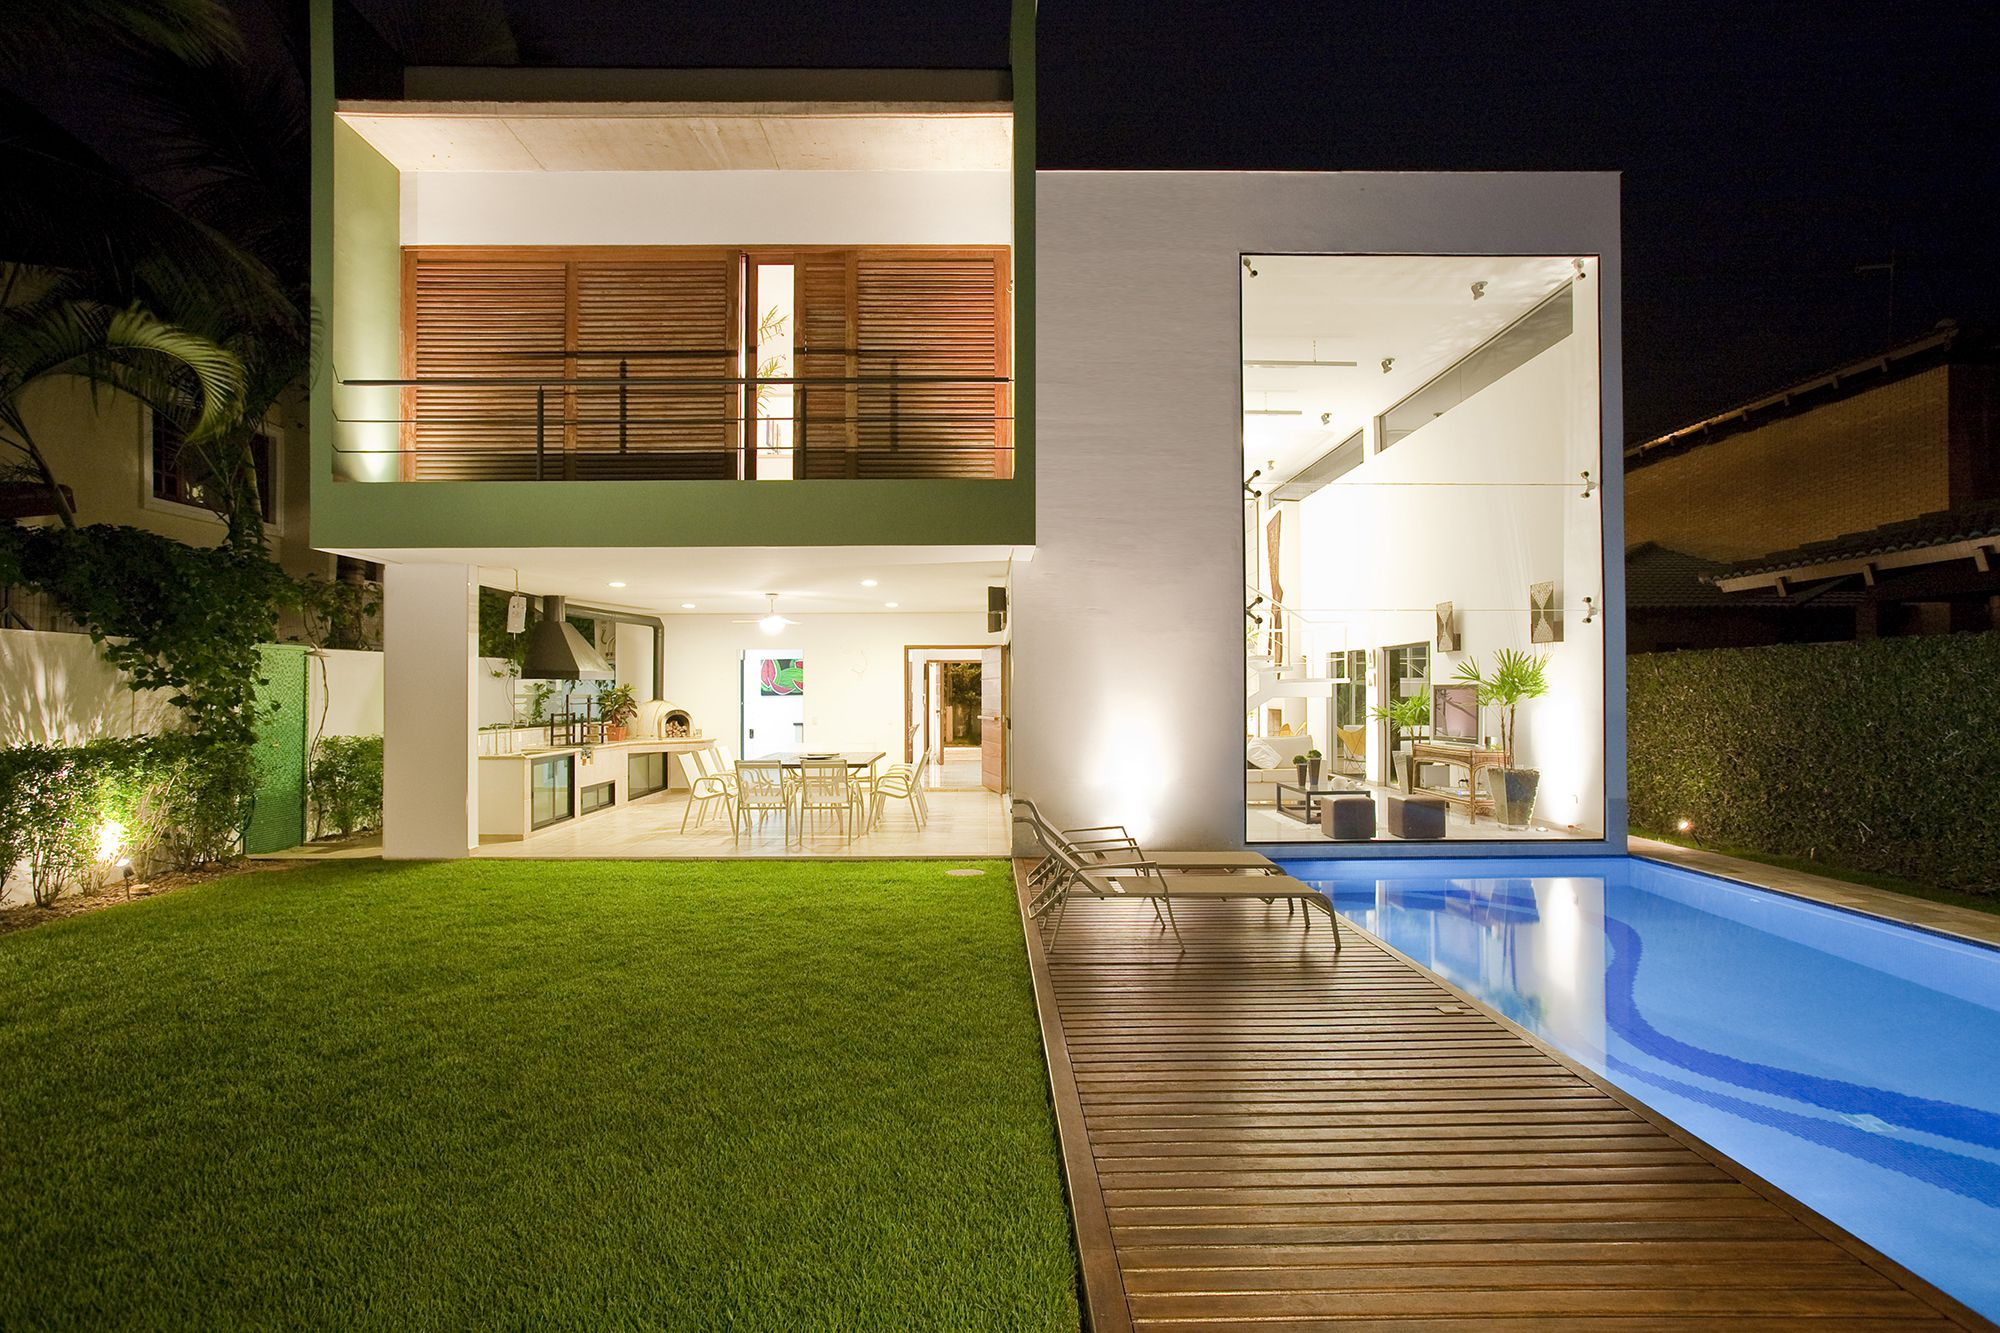 Acapulco House by FC Studio - CAANdesign | Architecture and home design blog